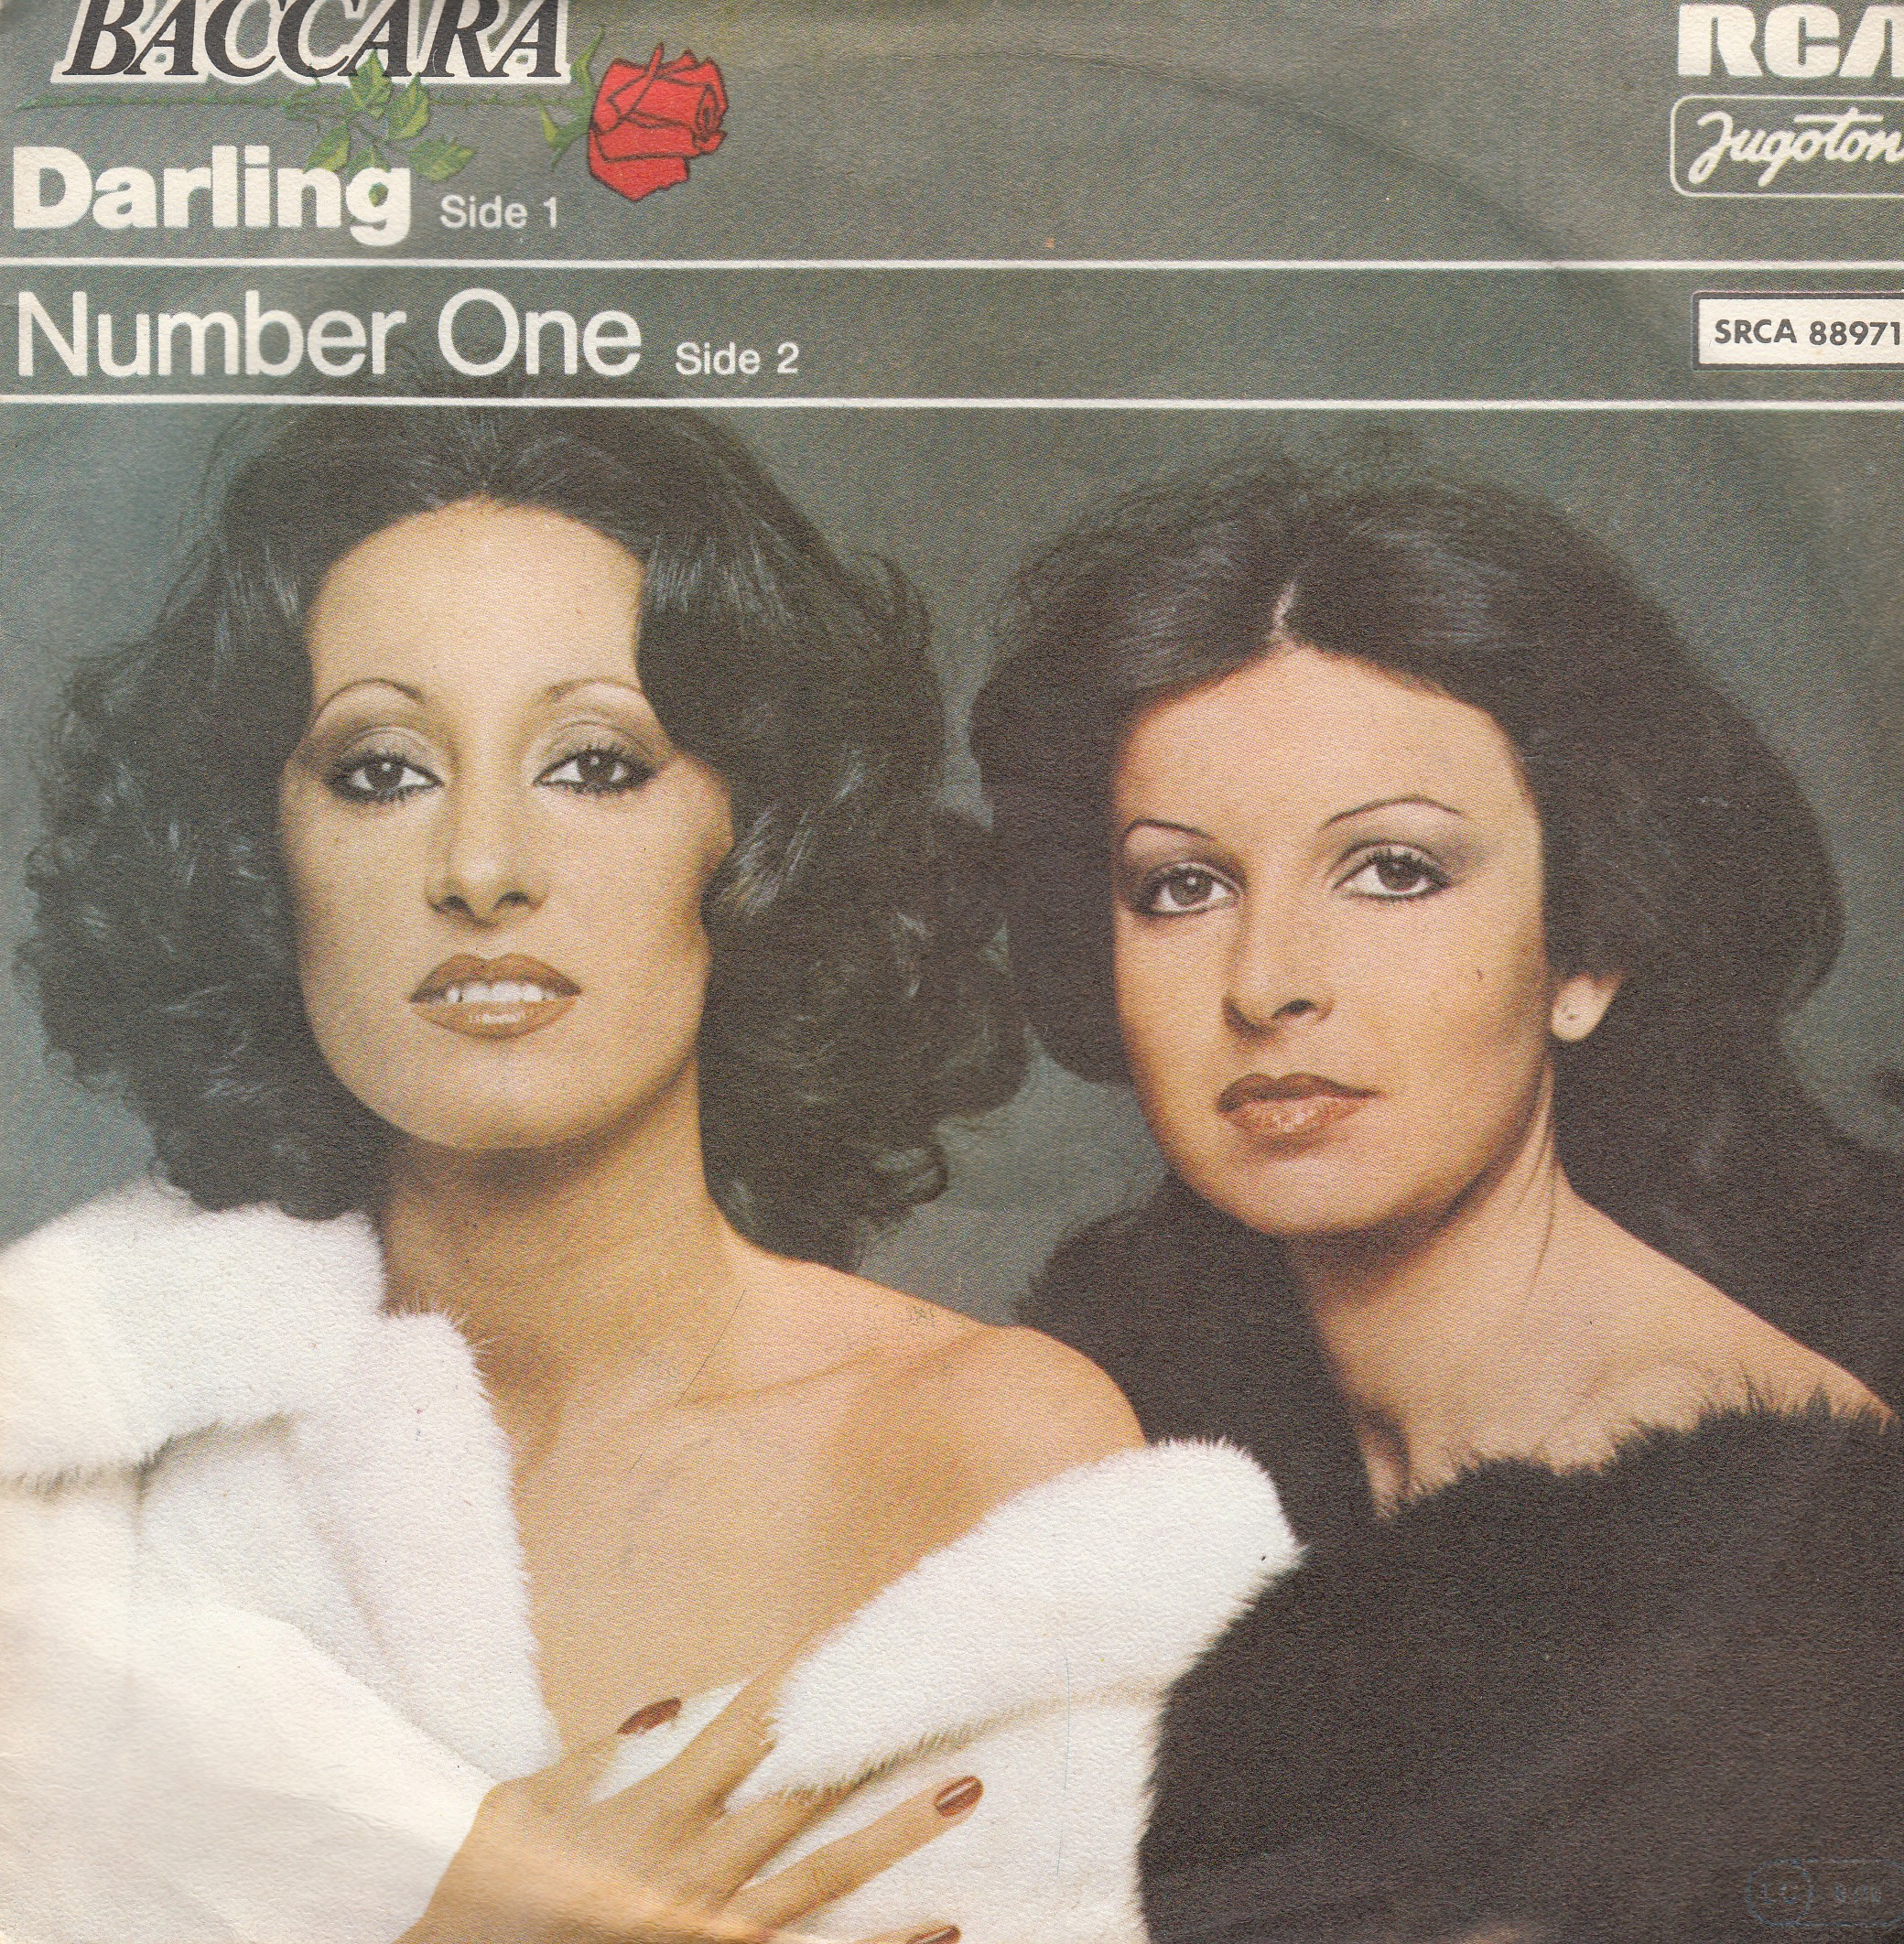 Baccara - Darling/number One